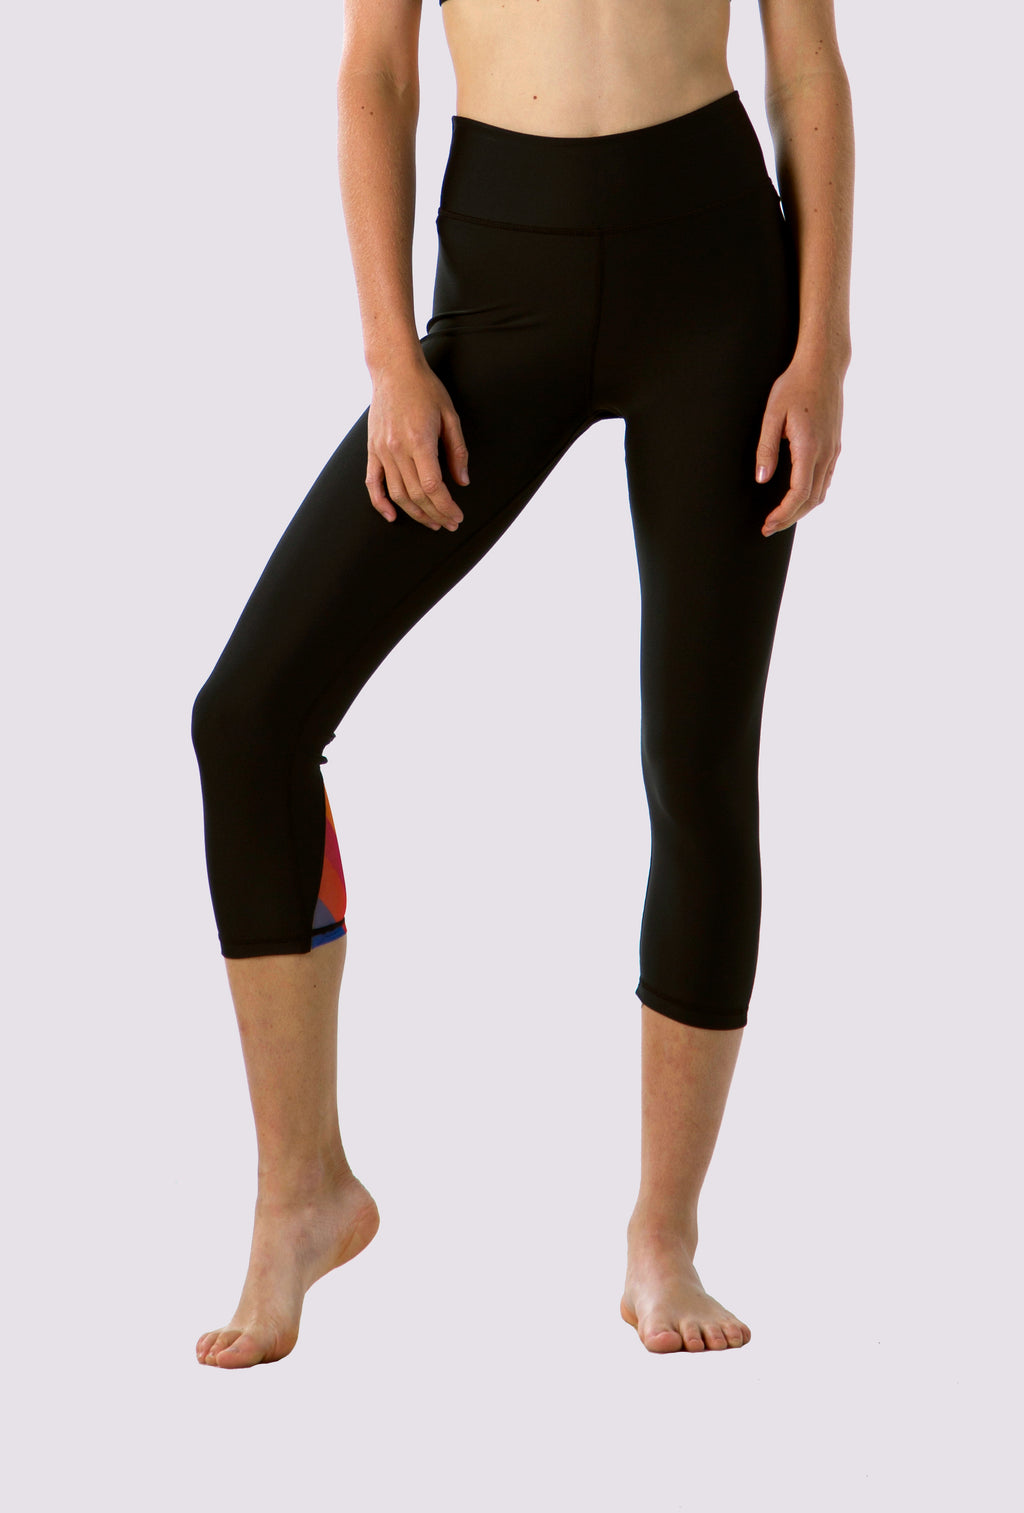 Natalie Capris Leggings - OHSOSOM | Yoga Clothing & Accessories